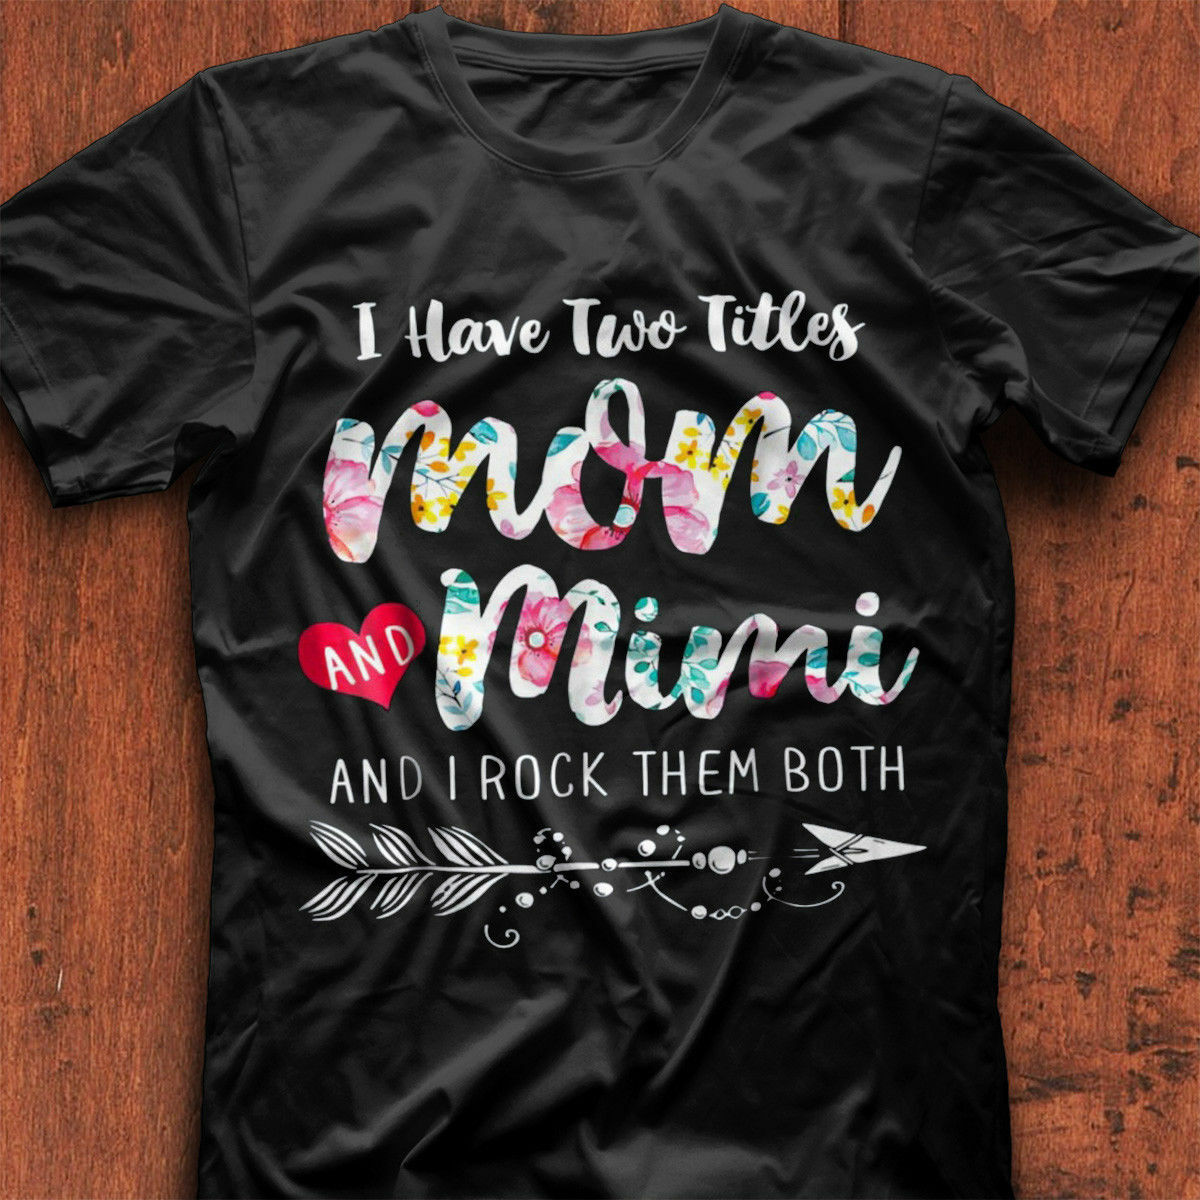 I Have Two Titles Mom And Mimi And I Rock Them Both T Shirt Black Men Cotton ...